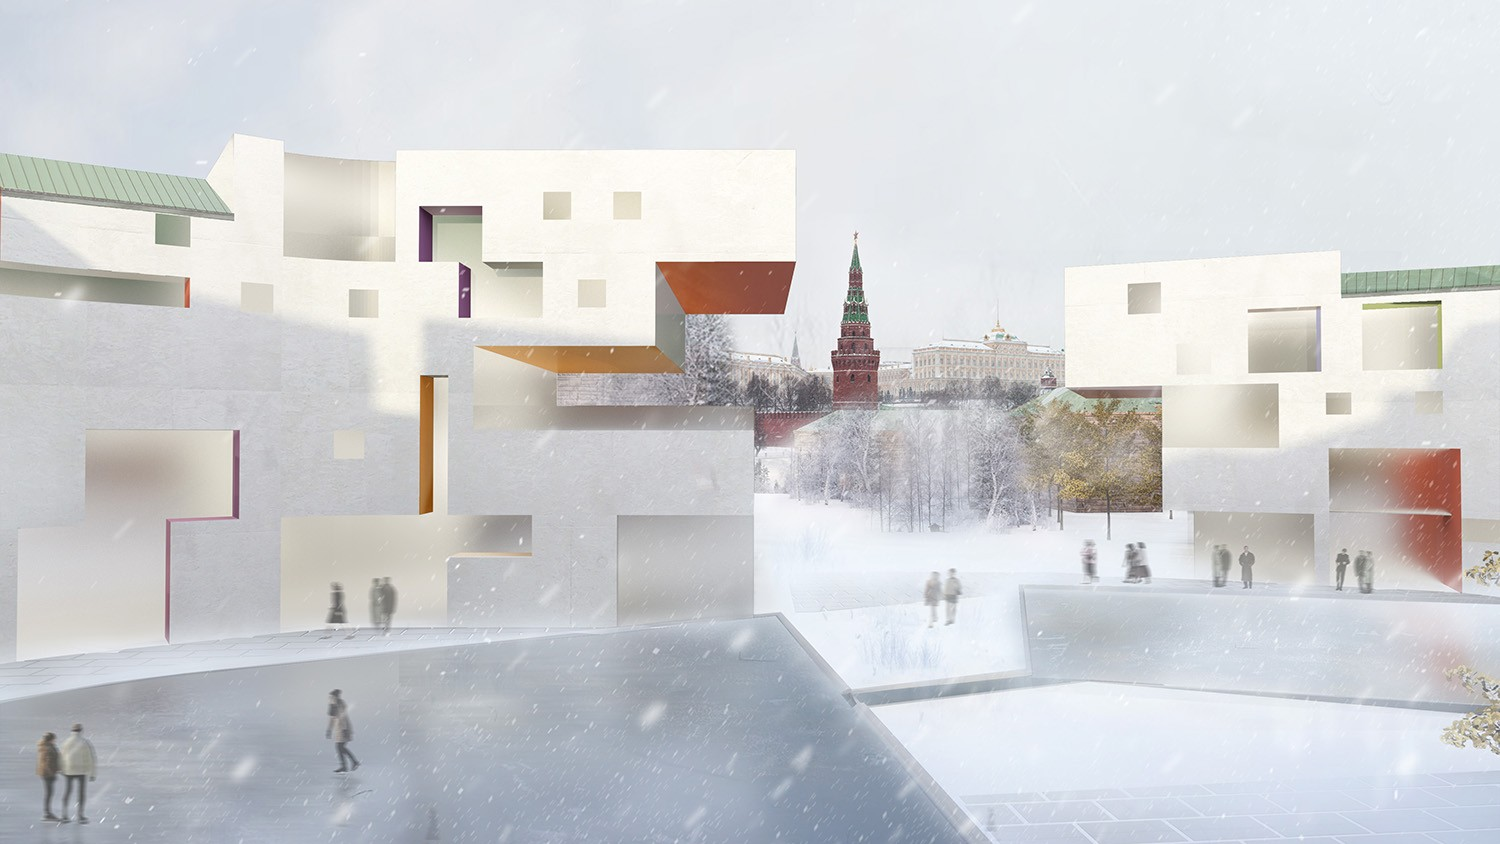 https://s3.us-east-2.amazonaws.com/steven-holl/uploads/projects/project-images/StevenHollArchitects_MGI_SHA-Moscow-main plaza_2_WH.jpg